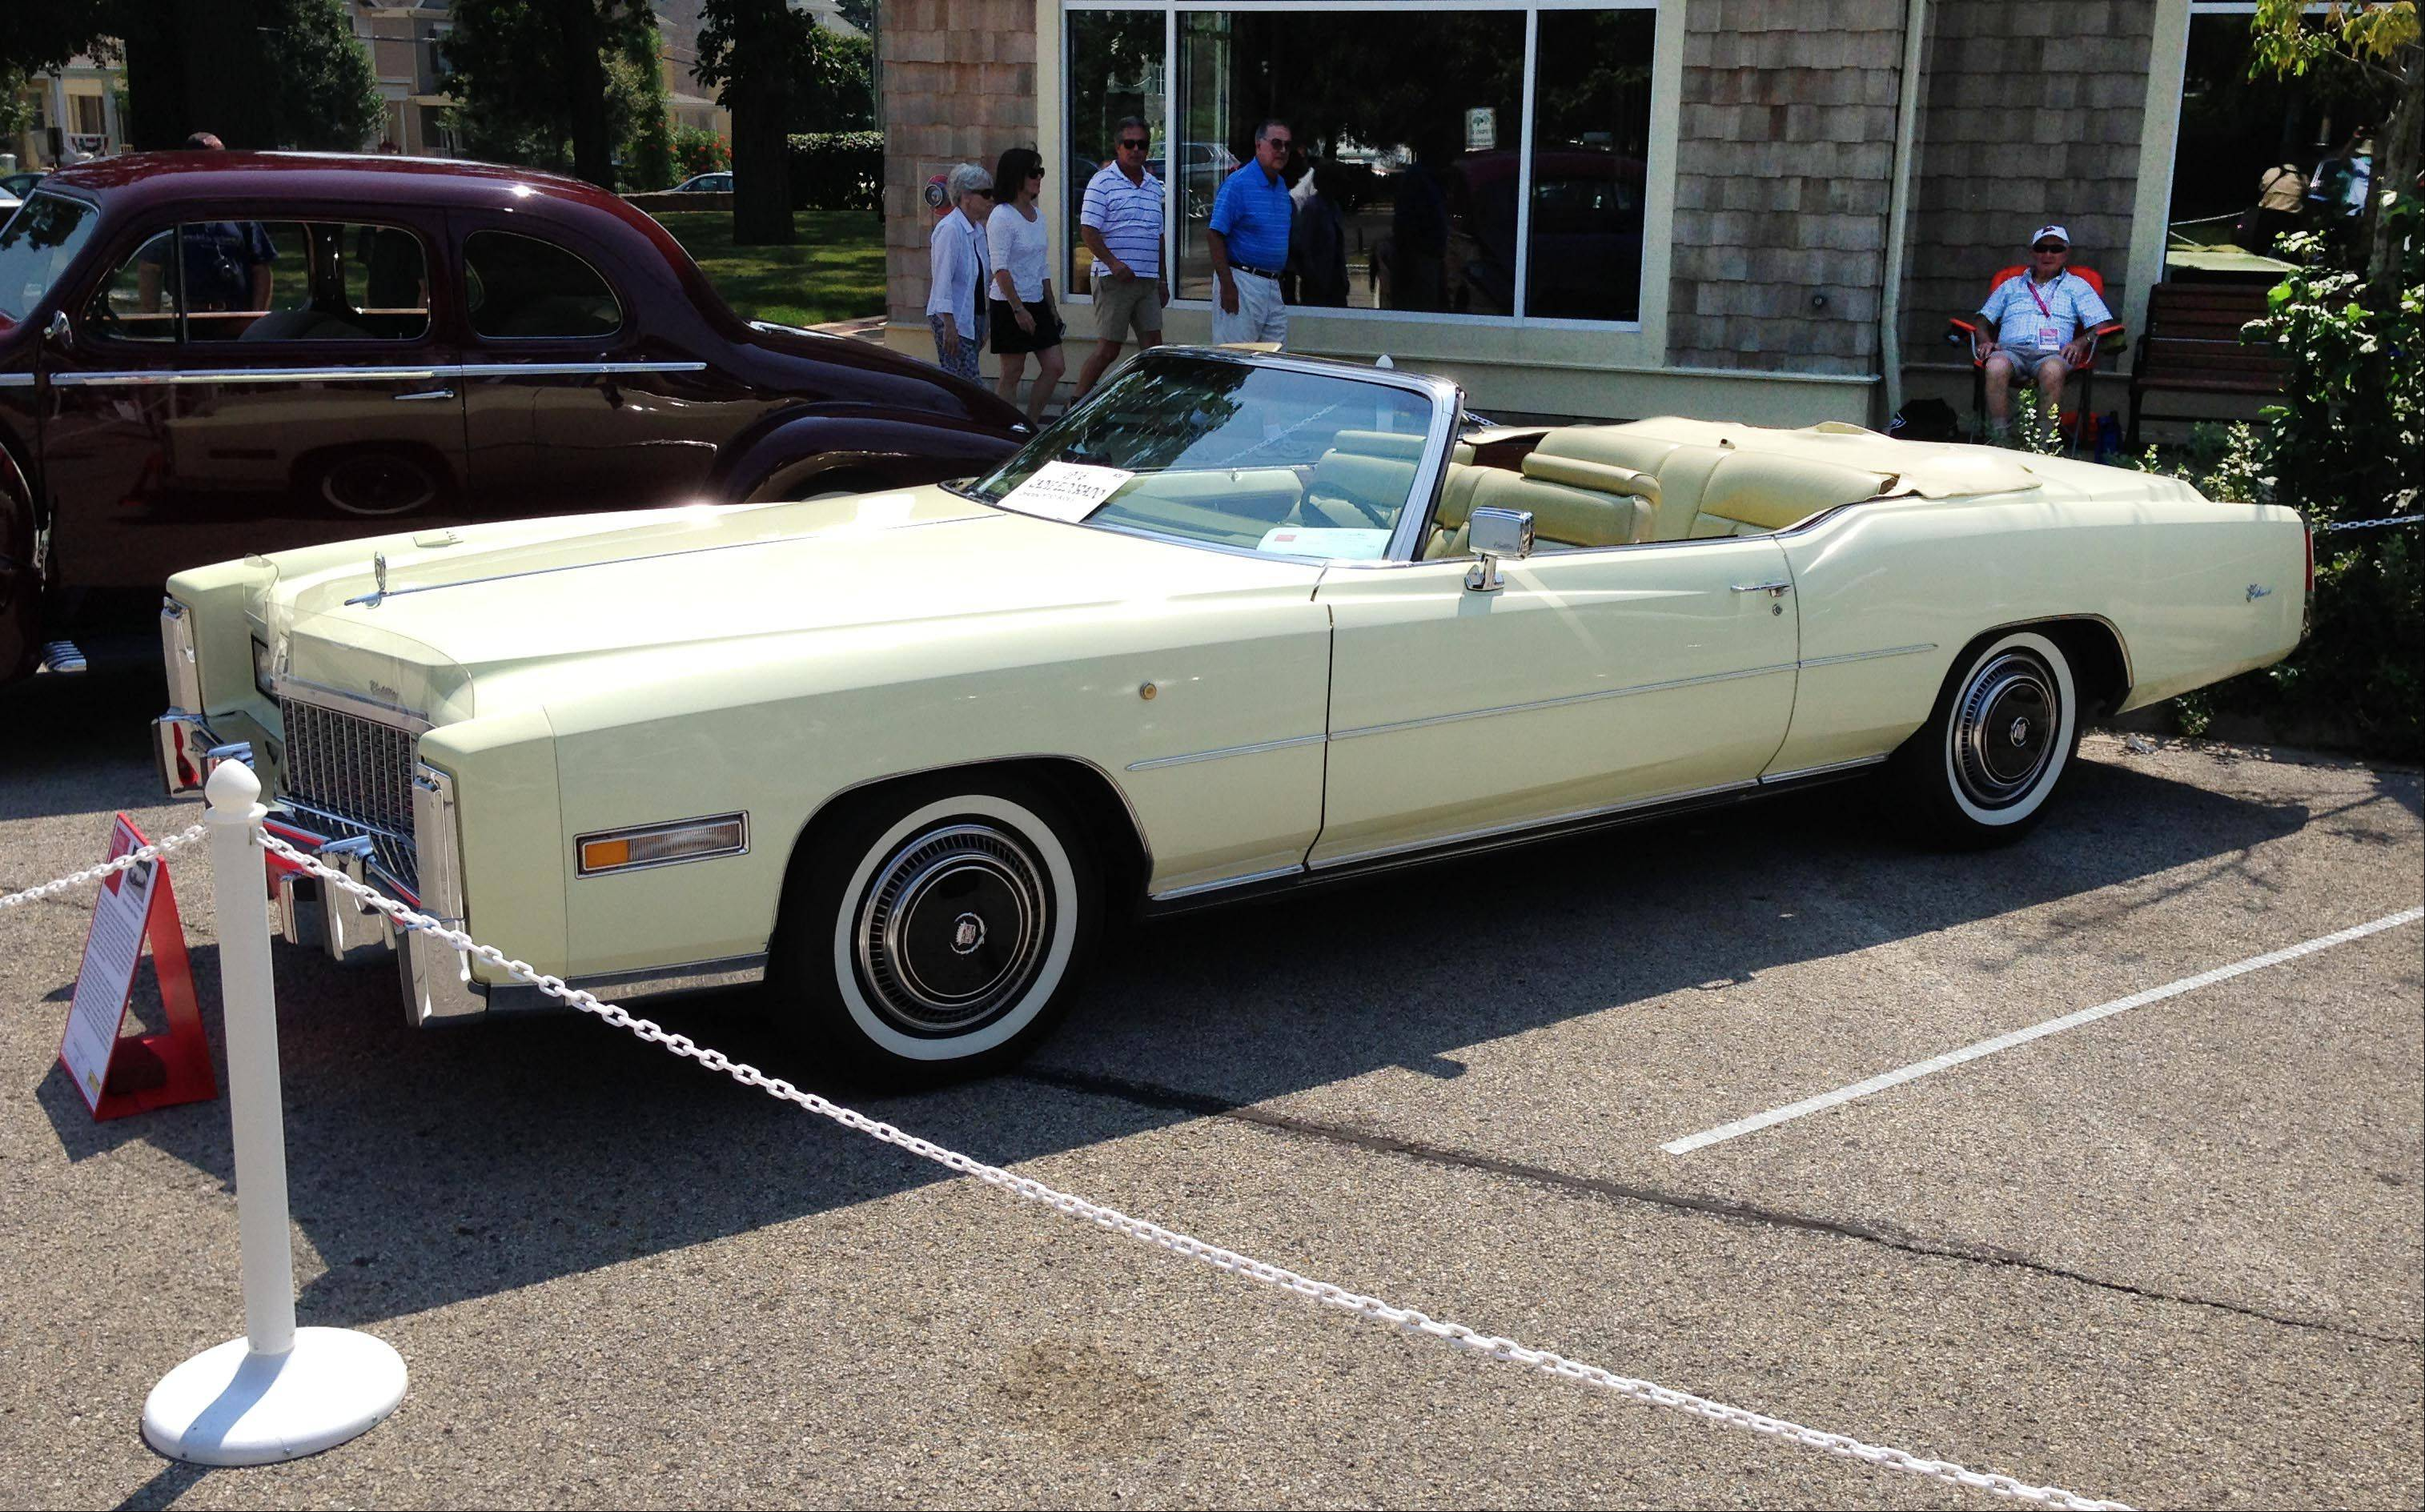 A 1976 Cadillac Eldorado two door convertible, owned by Hinsdale resident Charles Hartley, were among the cars on display Sunday during the Concours d�Elegance in downtown Geneva.